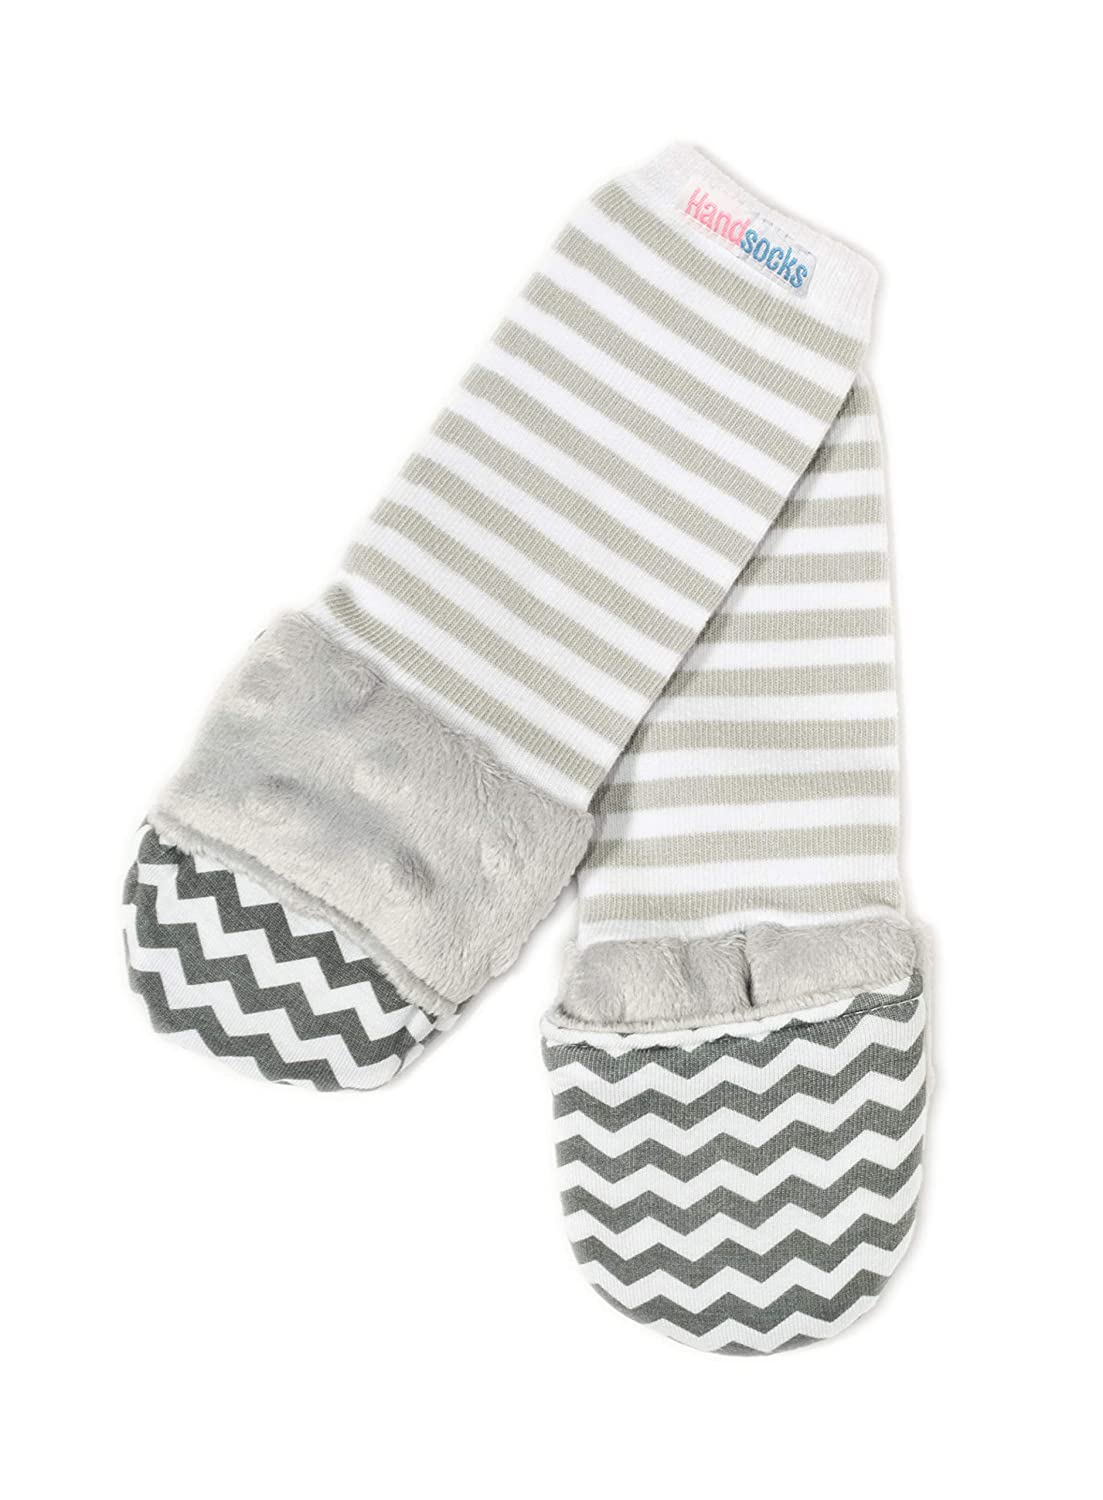 Handsocks Plushy Stay On Strap-Free No-Scratch & Warmth Mittens (Large (Toddler), Elodie (Grey Chevron))